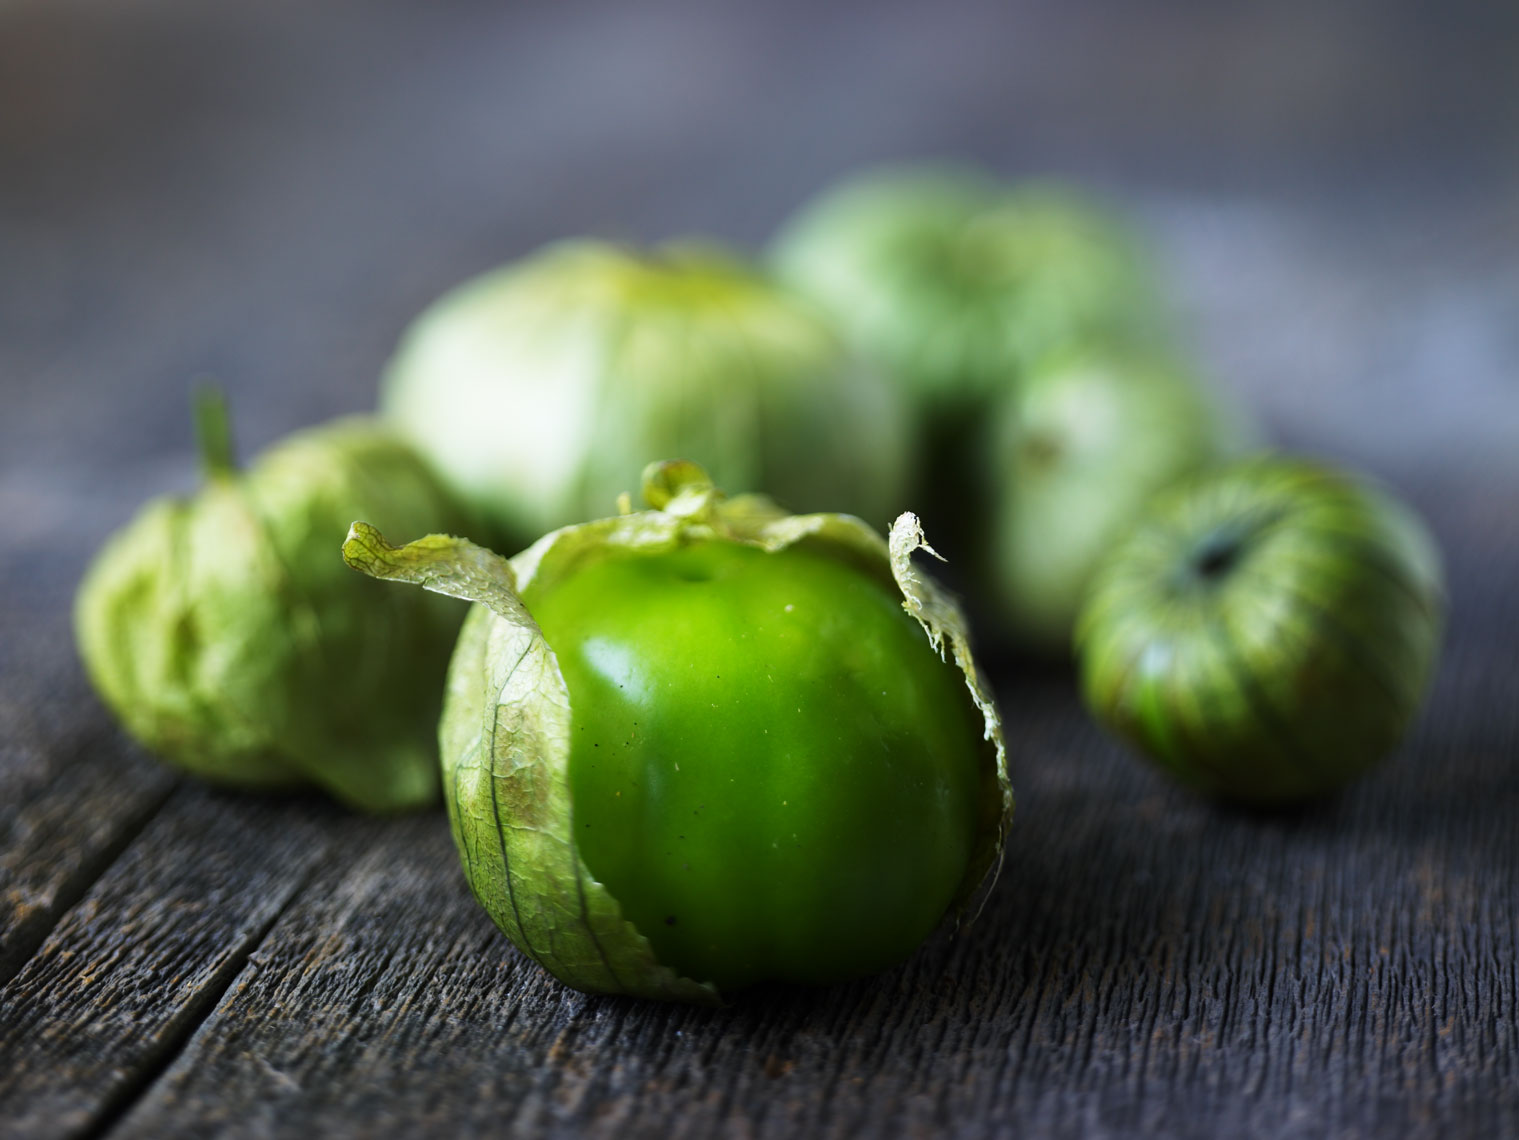 tomatillo on wood